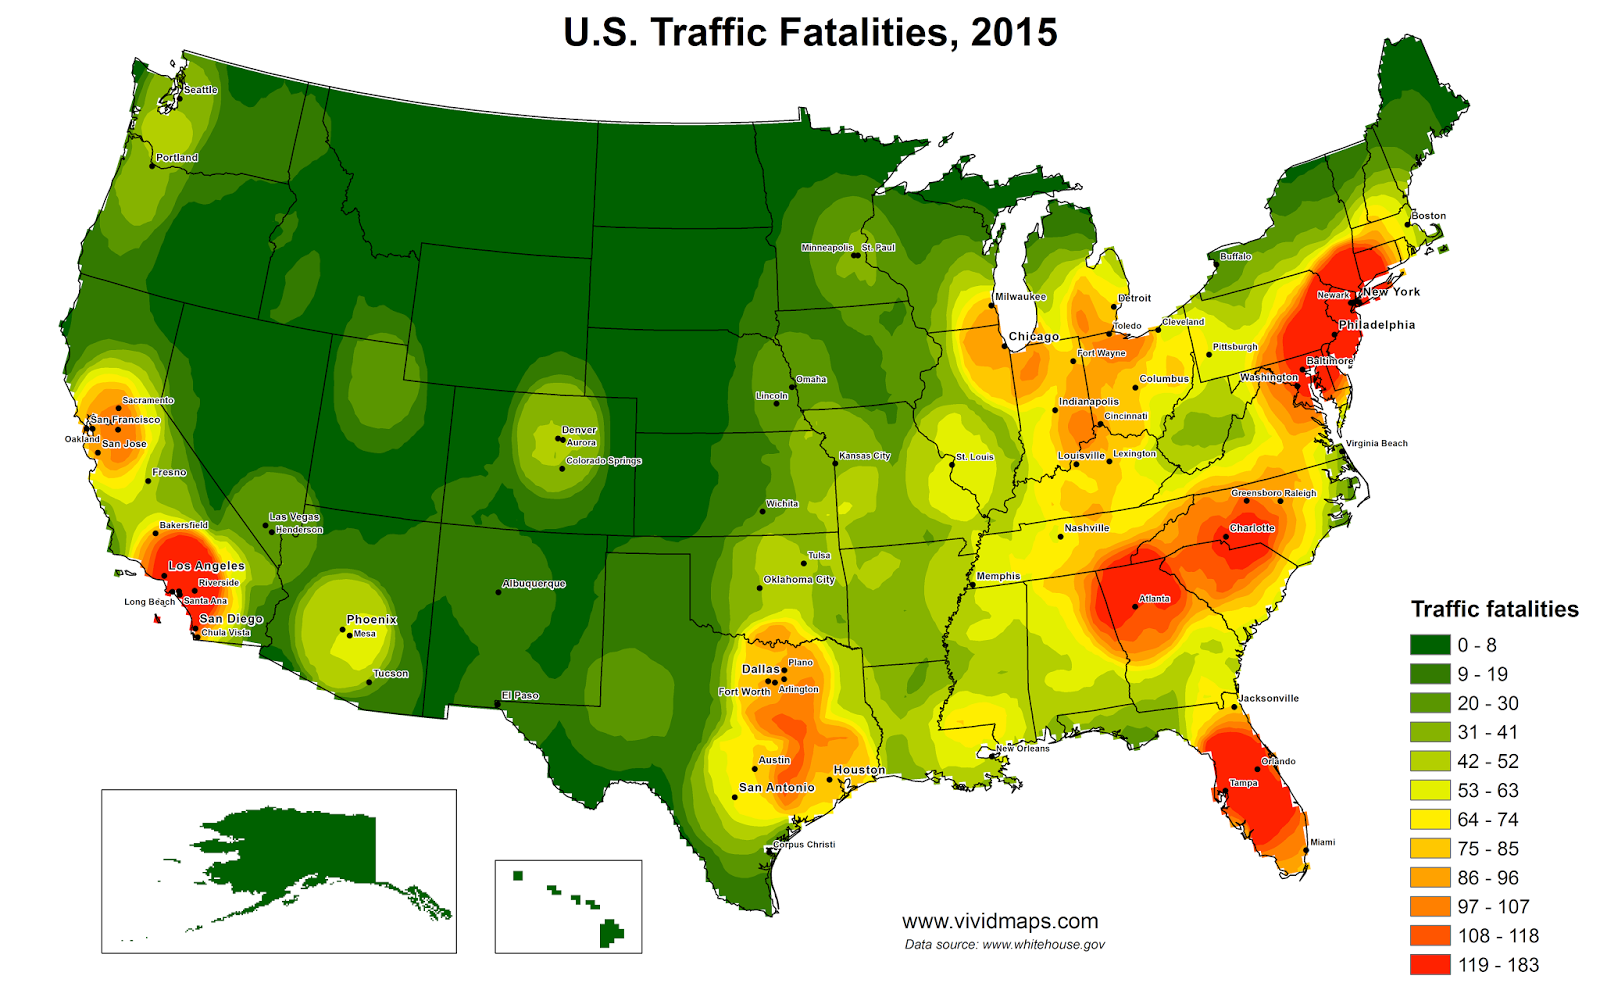 U.S. Traffic Fatalites Heat Map (2015)